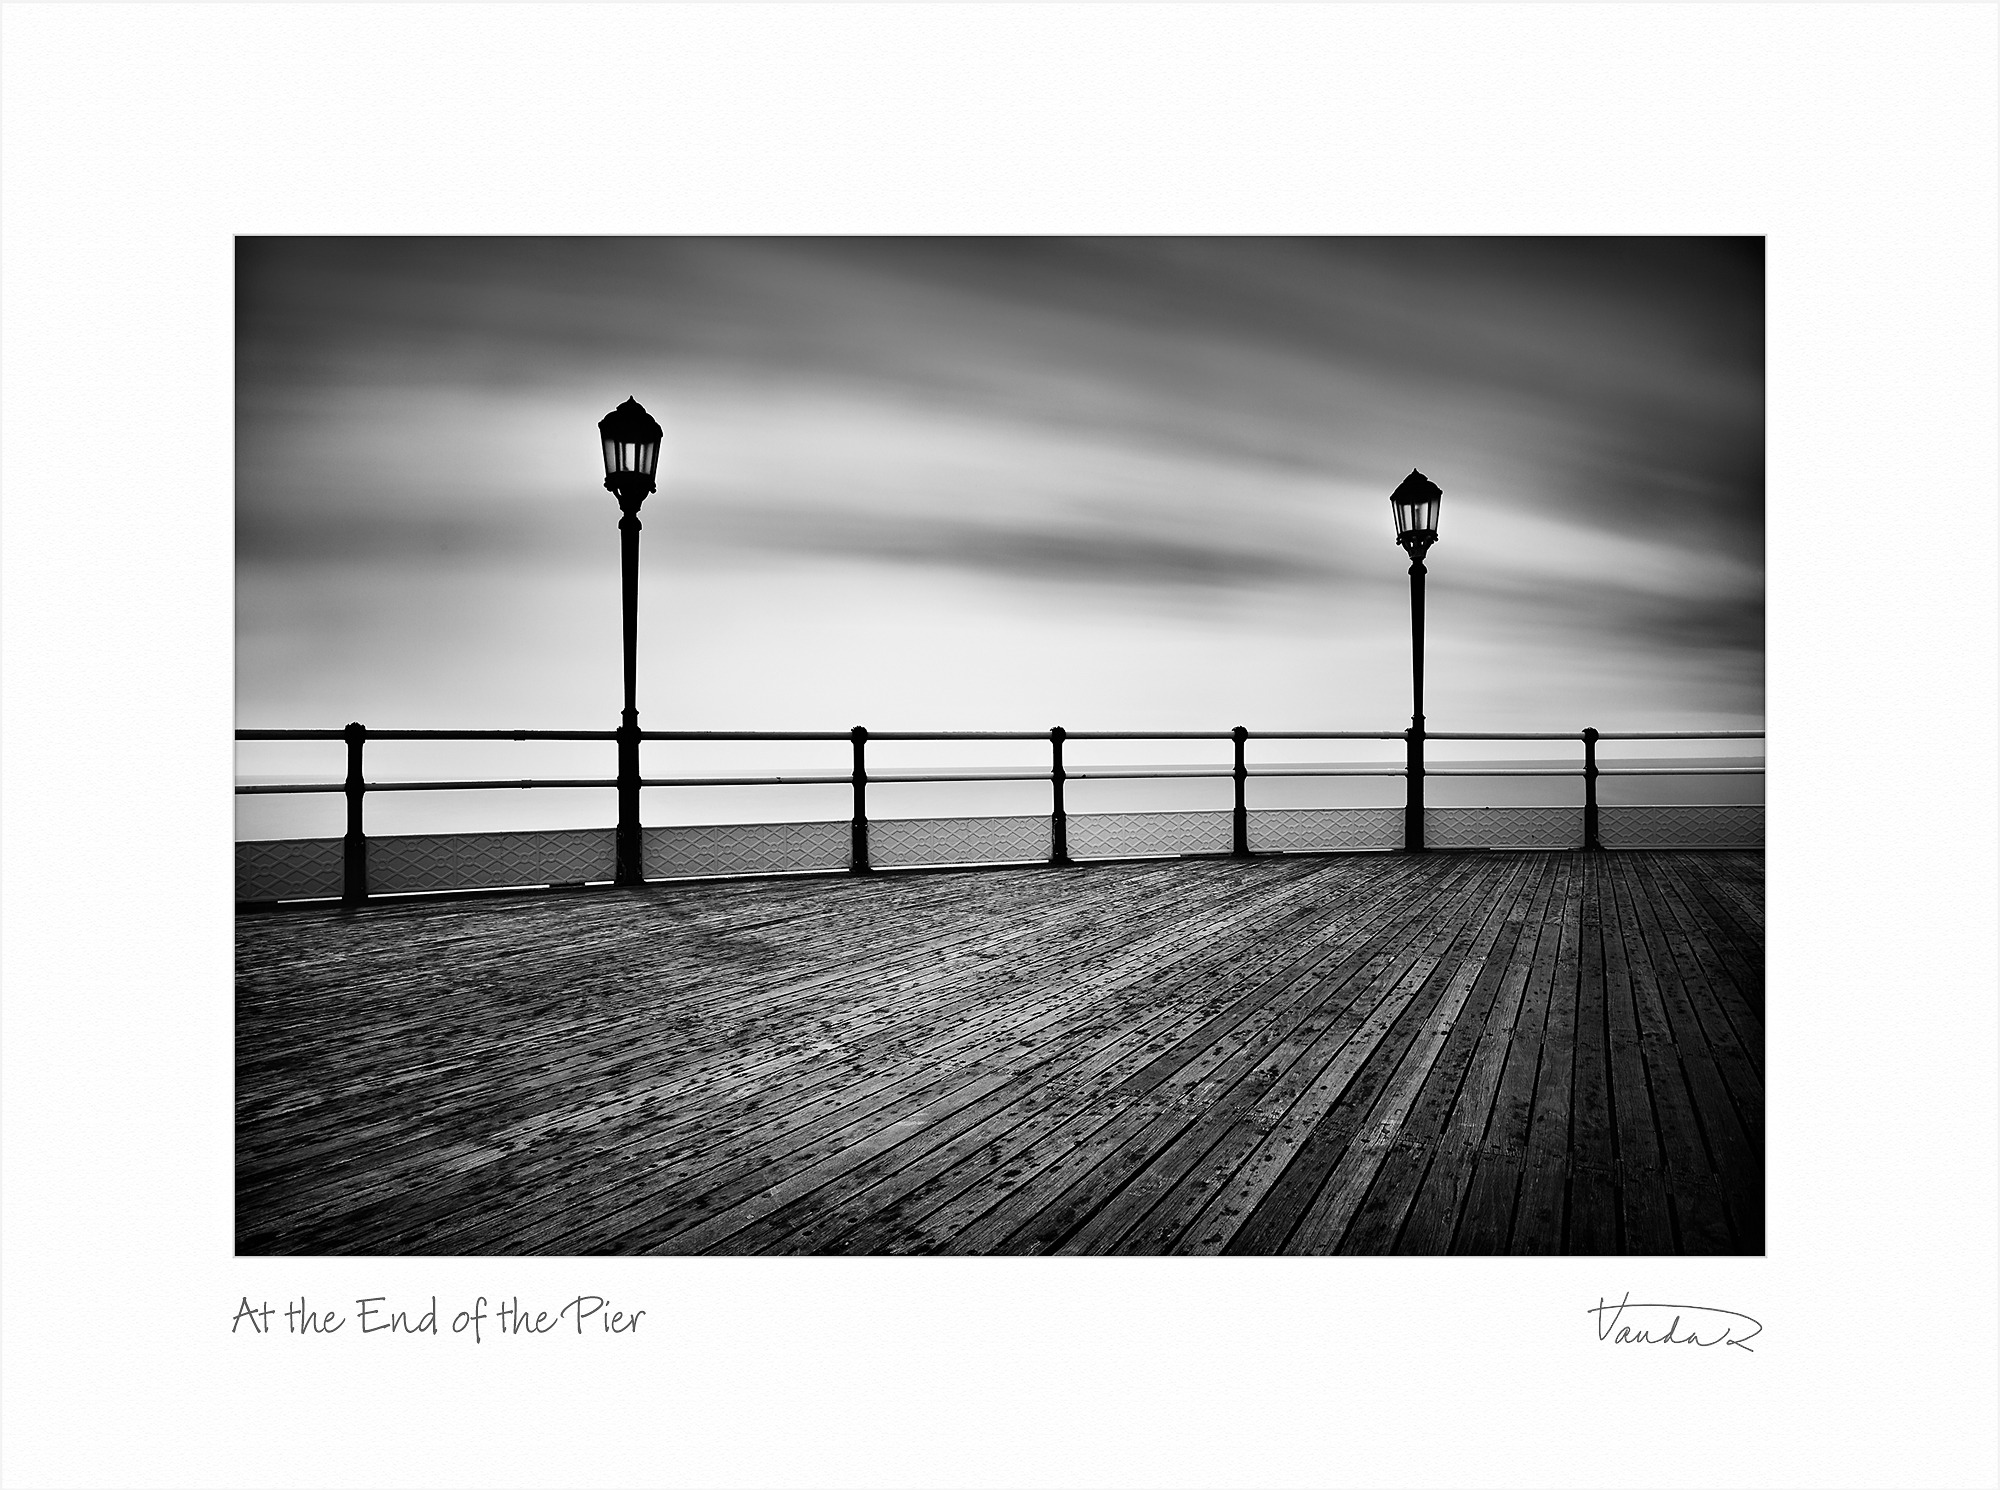 At the End of the Pier